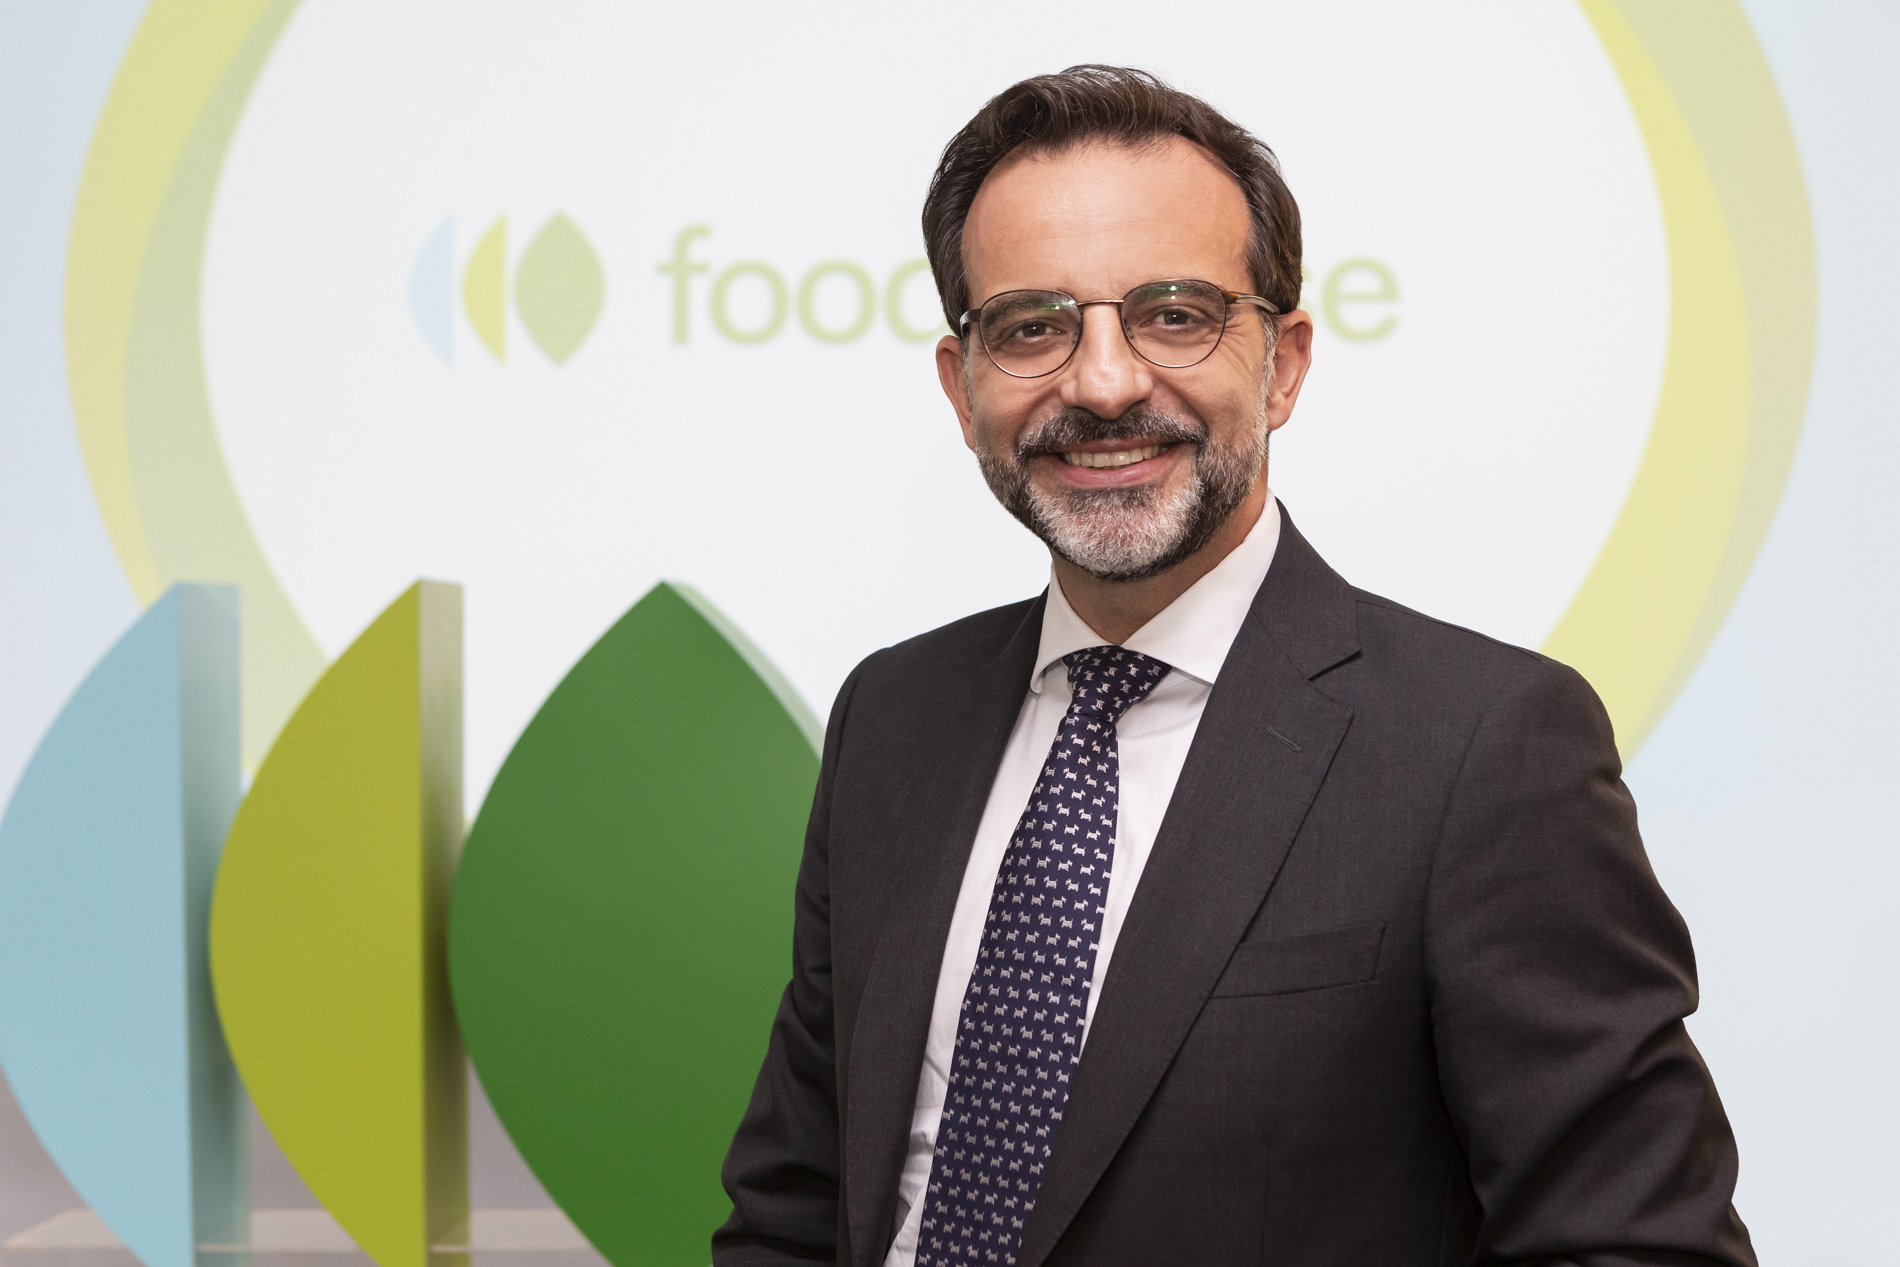 Foodiverse, a global group specialised in healthy eating present in 30 countries, hits the market